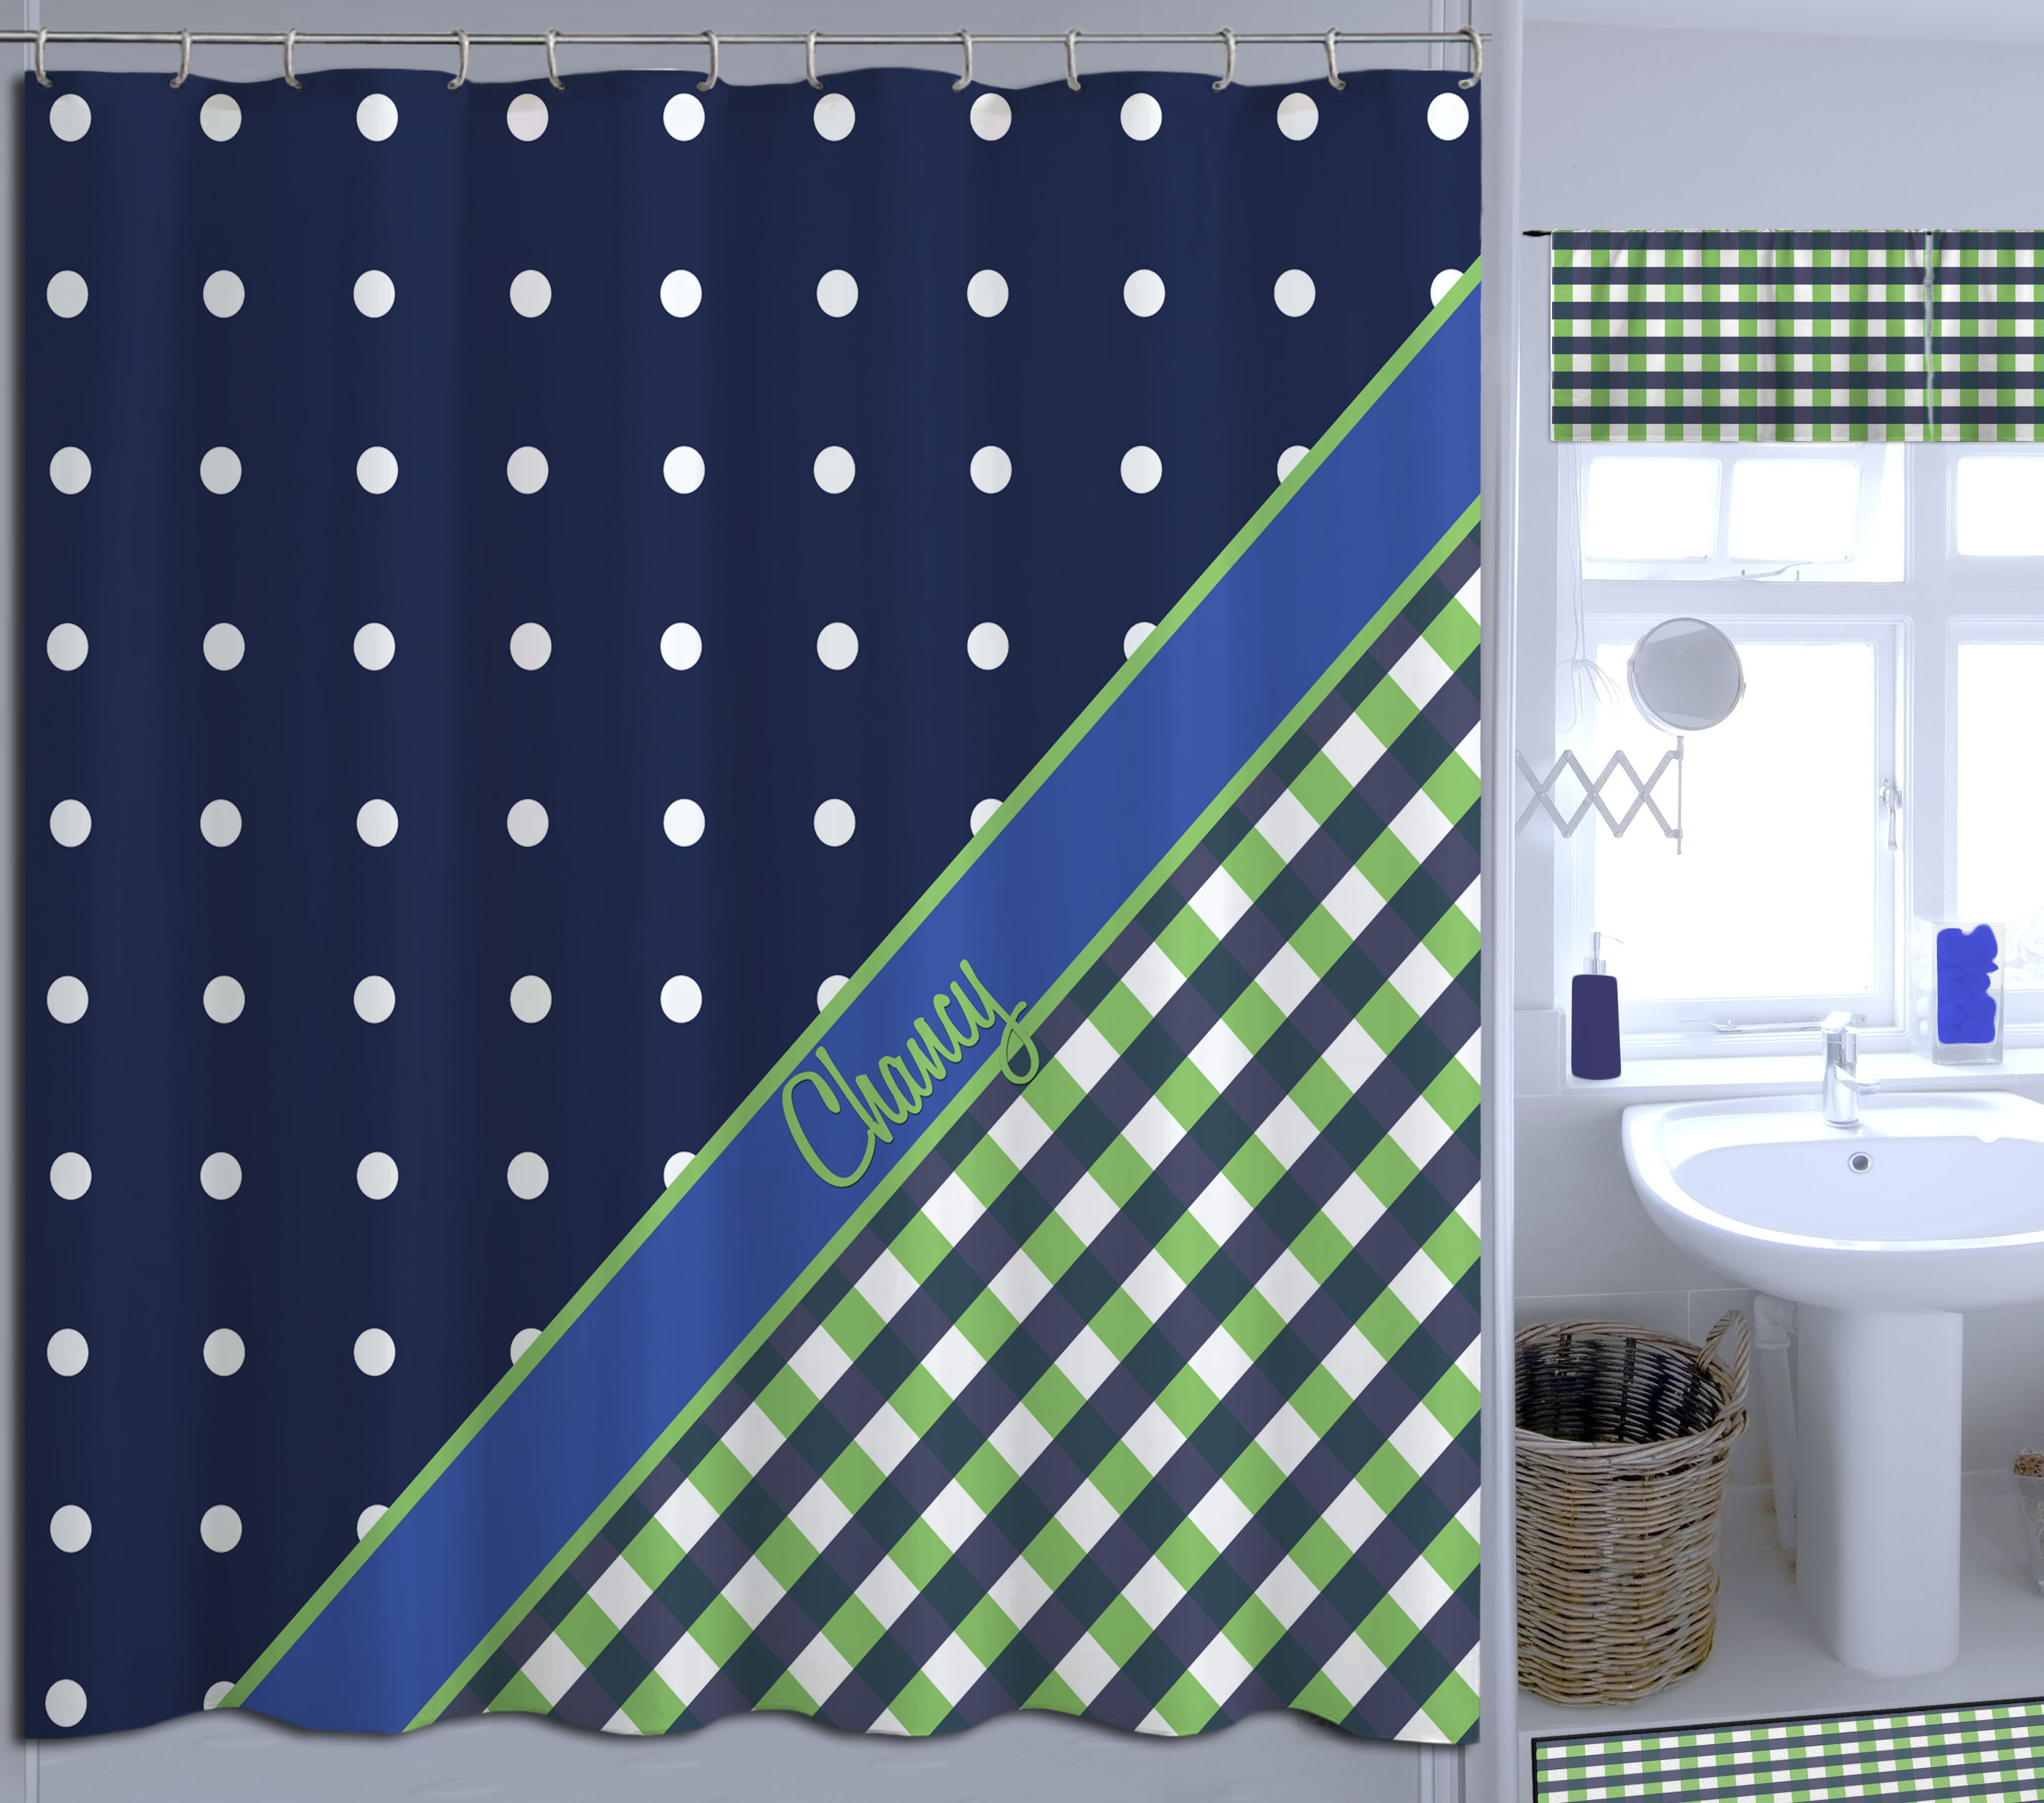 Navy Blue And Green Plaid And Polka Dots Shower Curtain Great For Boys 42